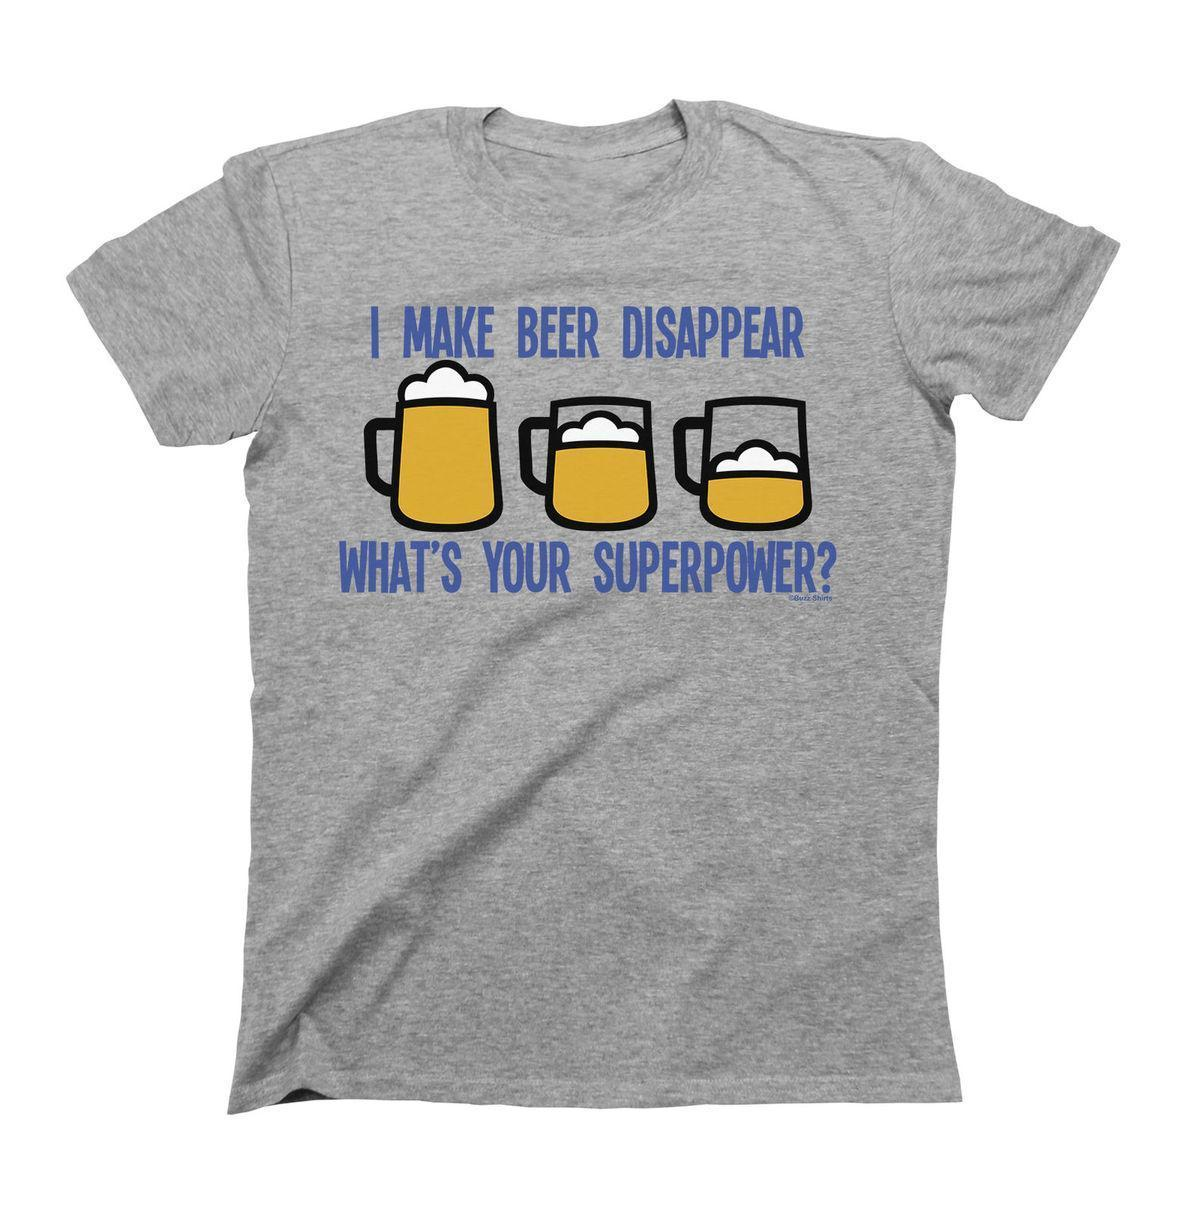 f426c00d I Make Beer Disappear Superpower T-Shirt Mens Ladies Unisex Fit Funny  Printing Casual T Shirt Men'S Tees Funny